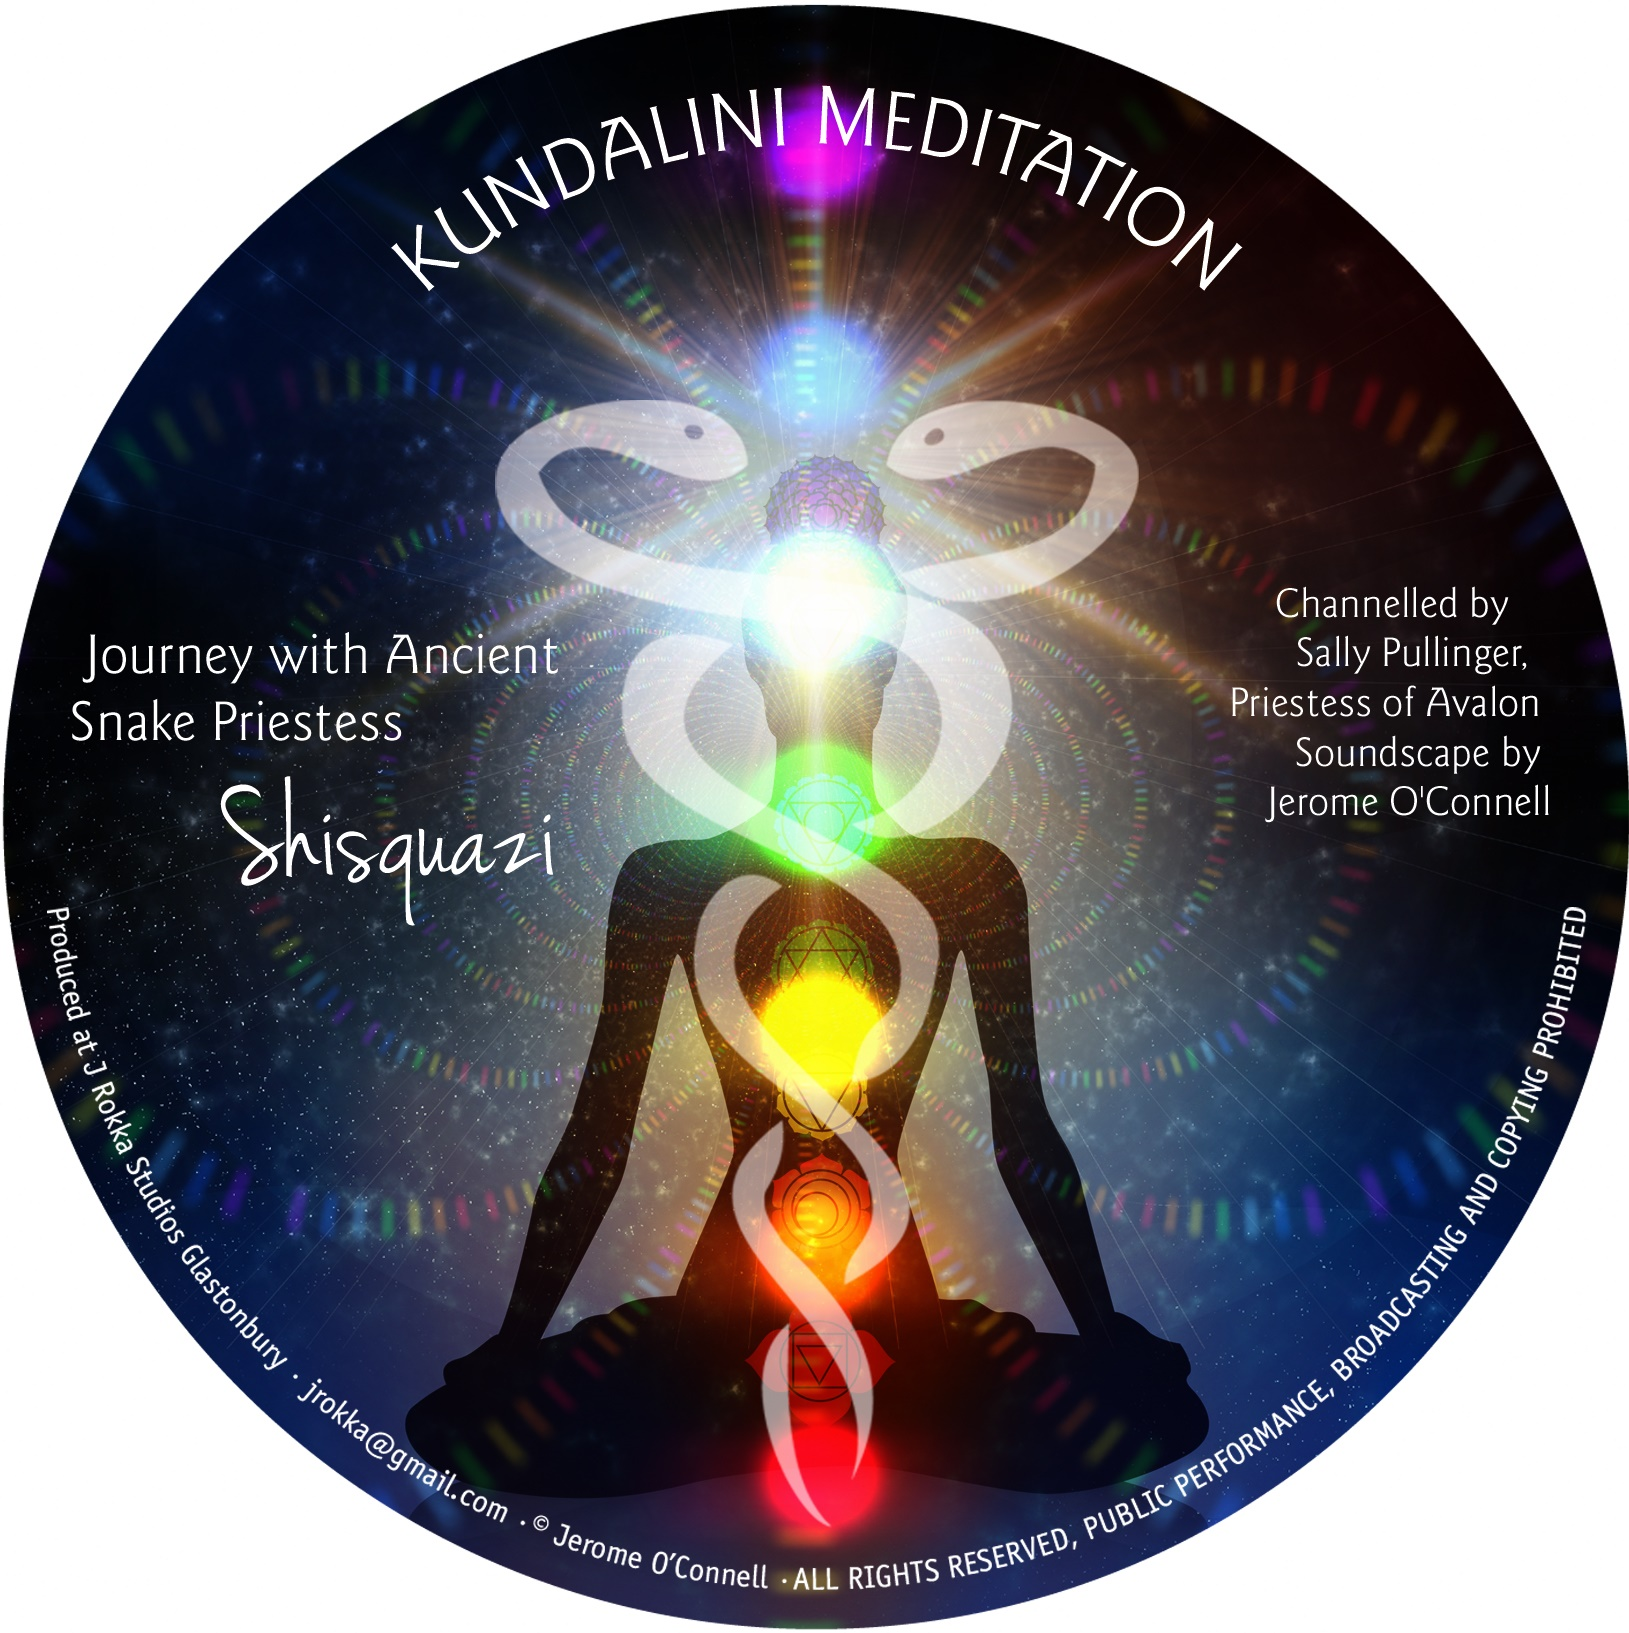 kundalini meditation cd by Sally Pullinger